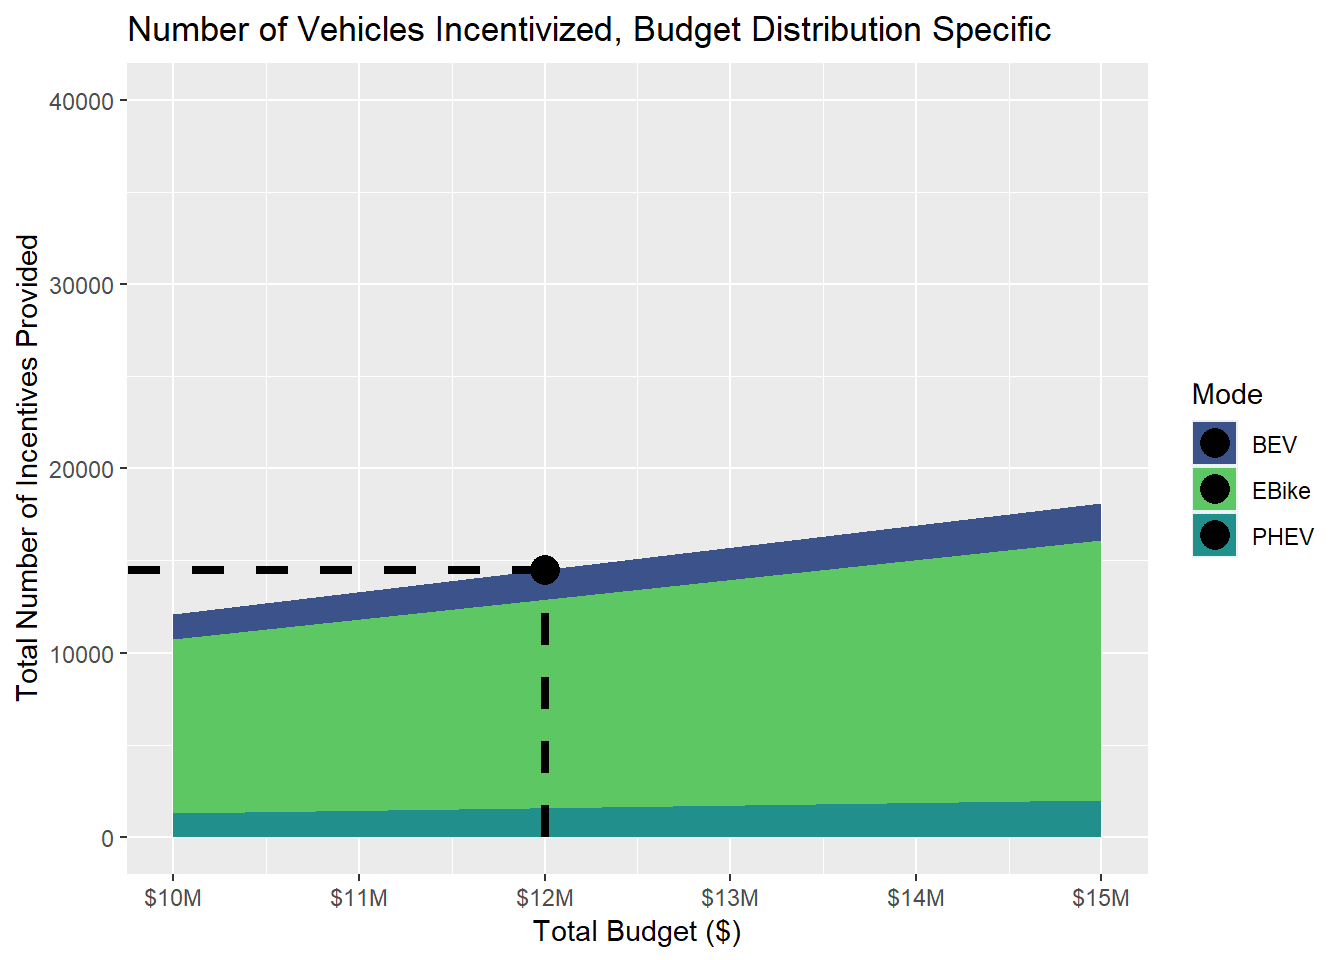 This plot displays the number of vehicles that can be incentivized given the total budget and distribution of the budget. With the proposed program, 11314 e-bikes, 1584 battery electric vehicles, and 1584 plug-in hybrid electric vehicles can be incentiviz